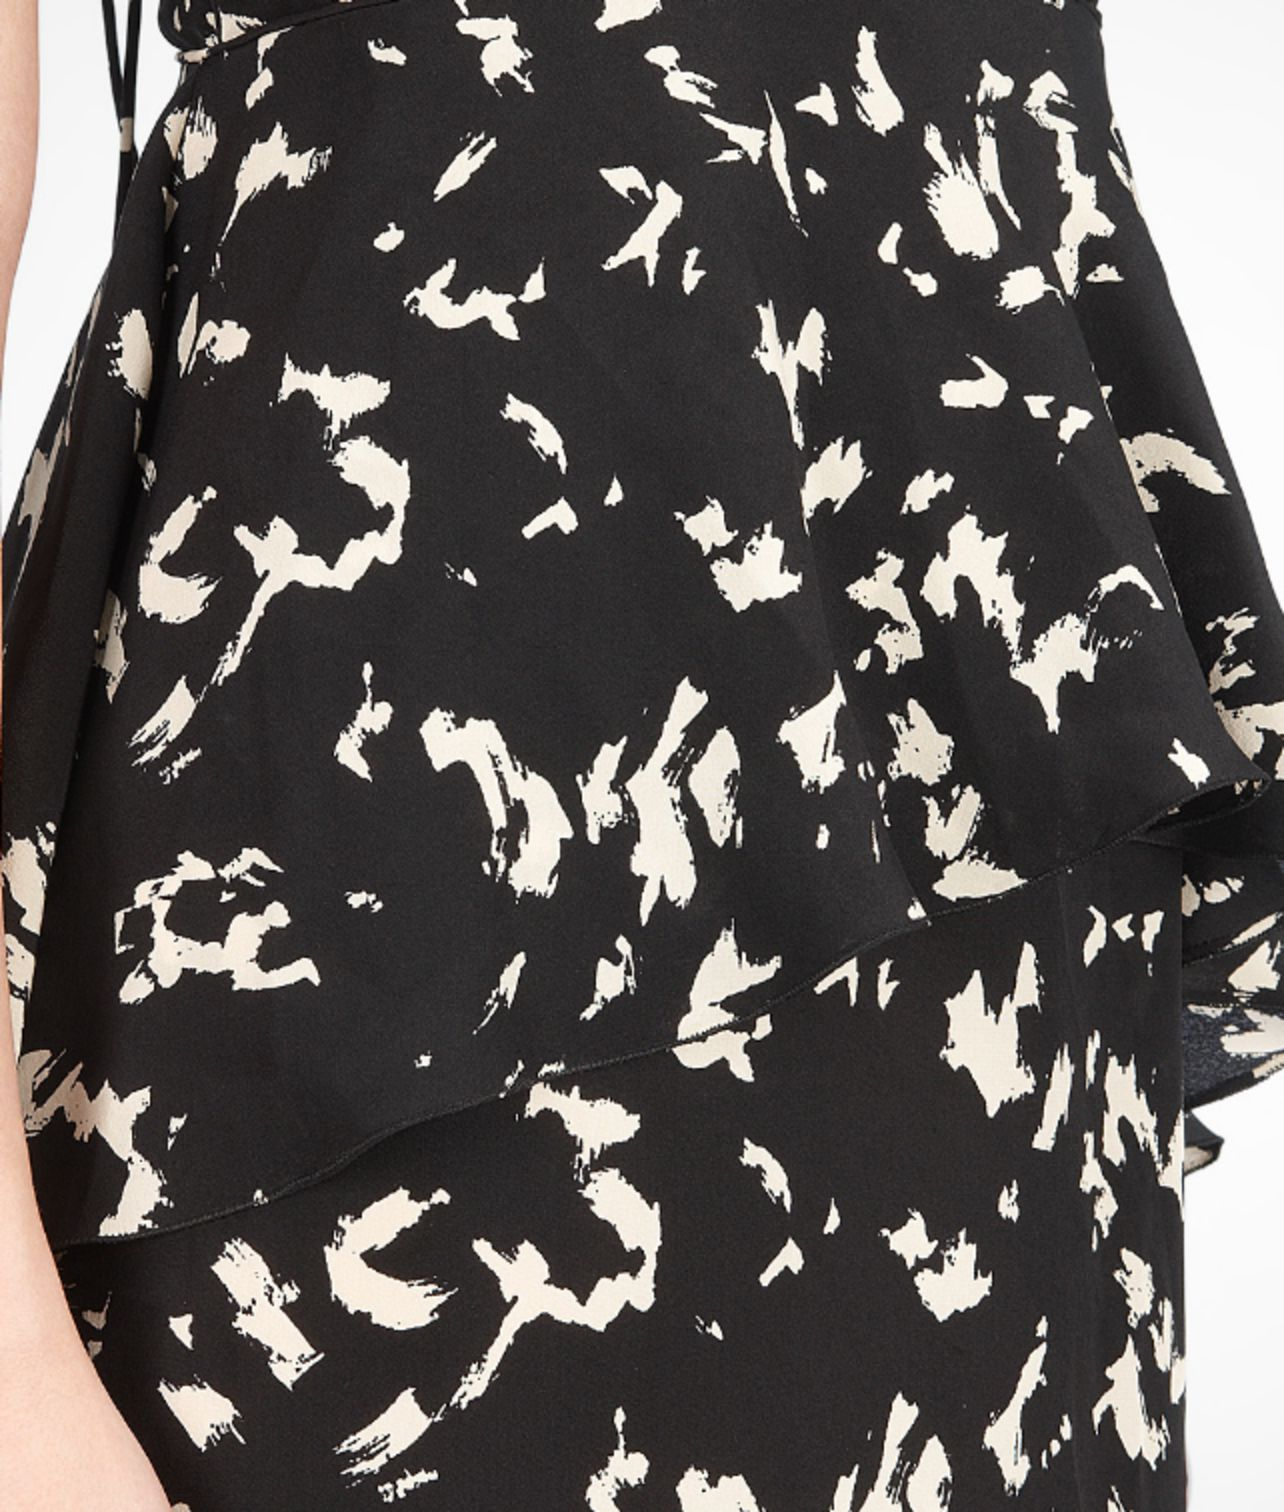 BOTTEGA VENETA - Silk Falling Leaves Print Dress